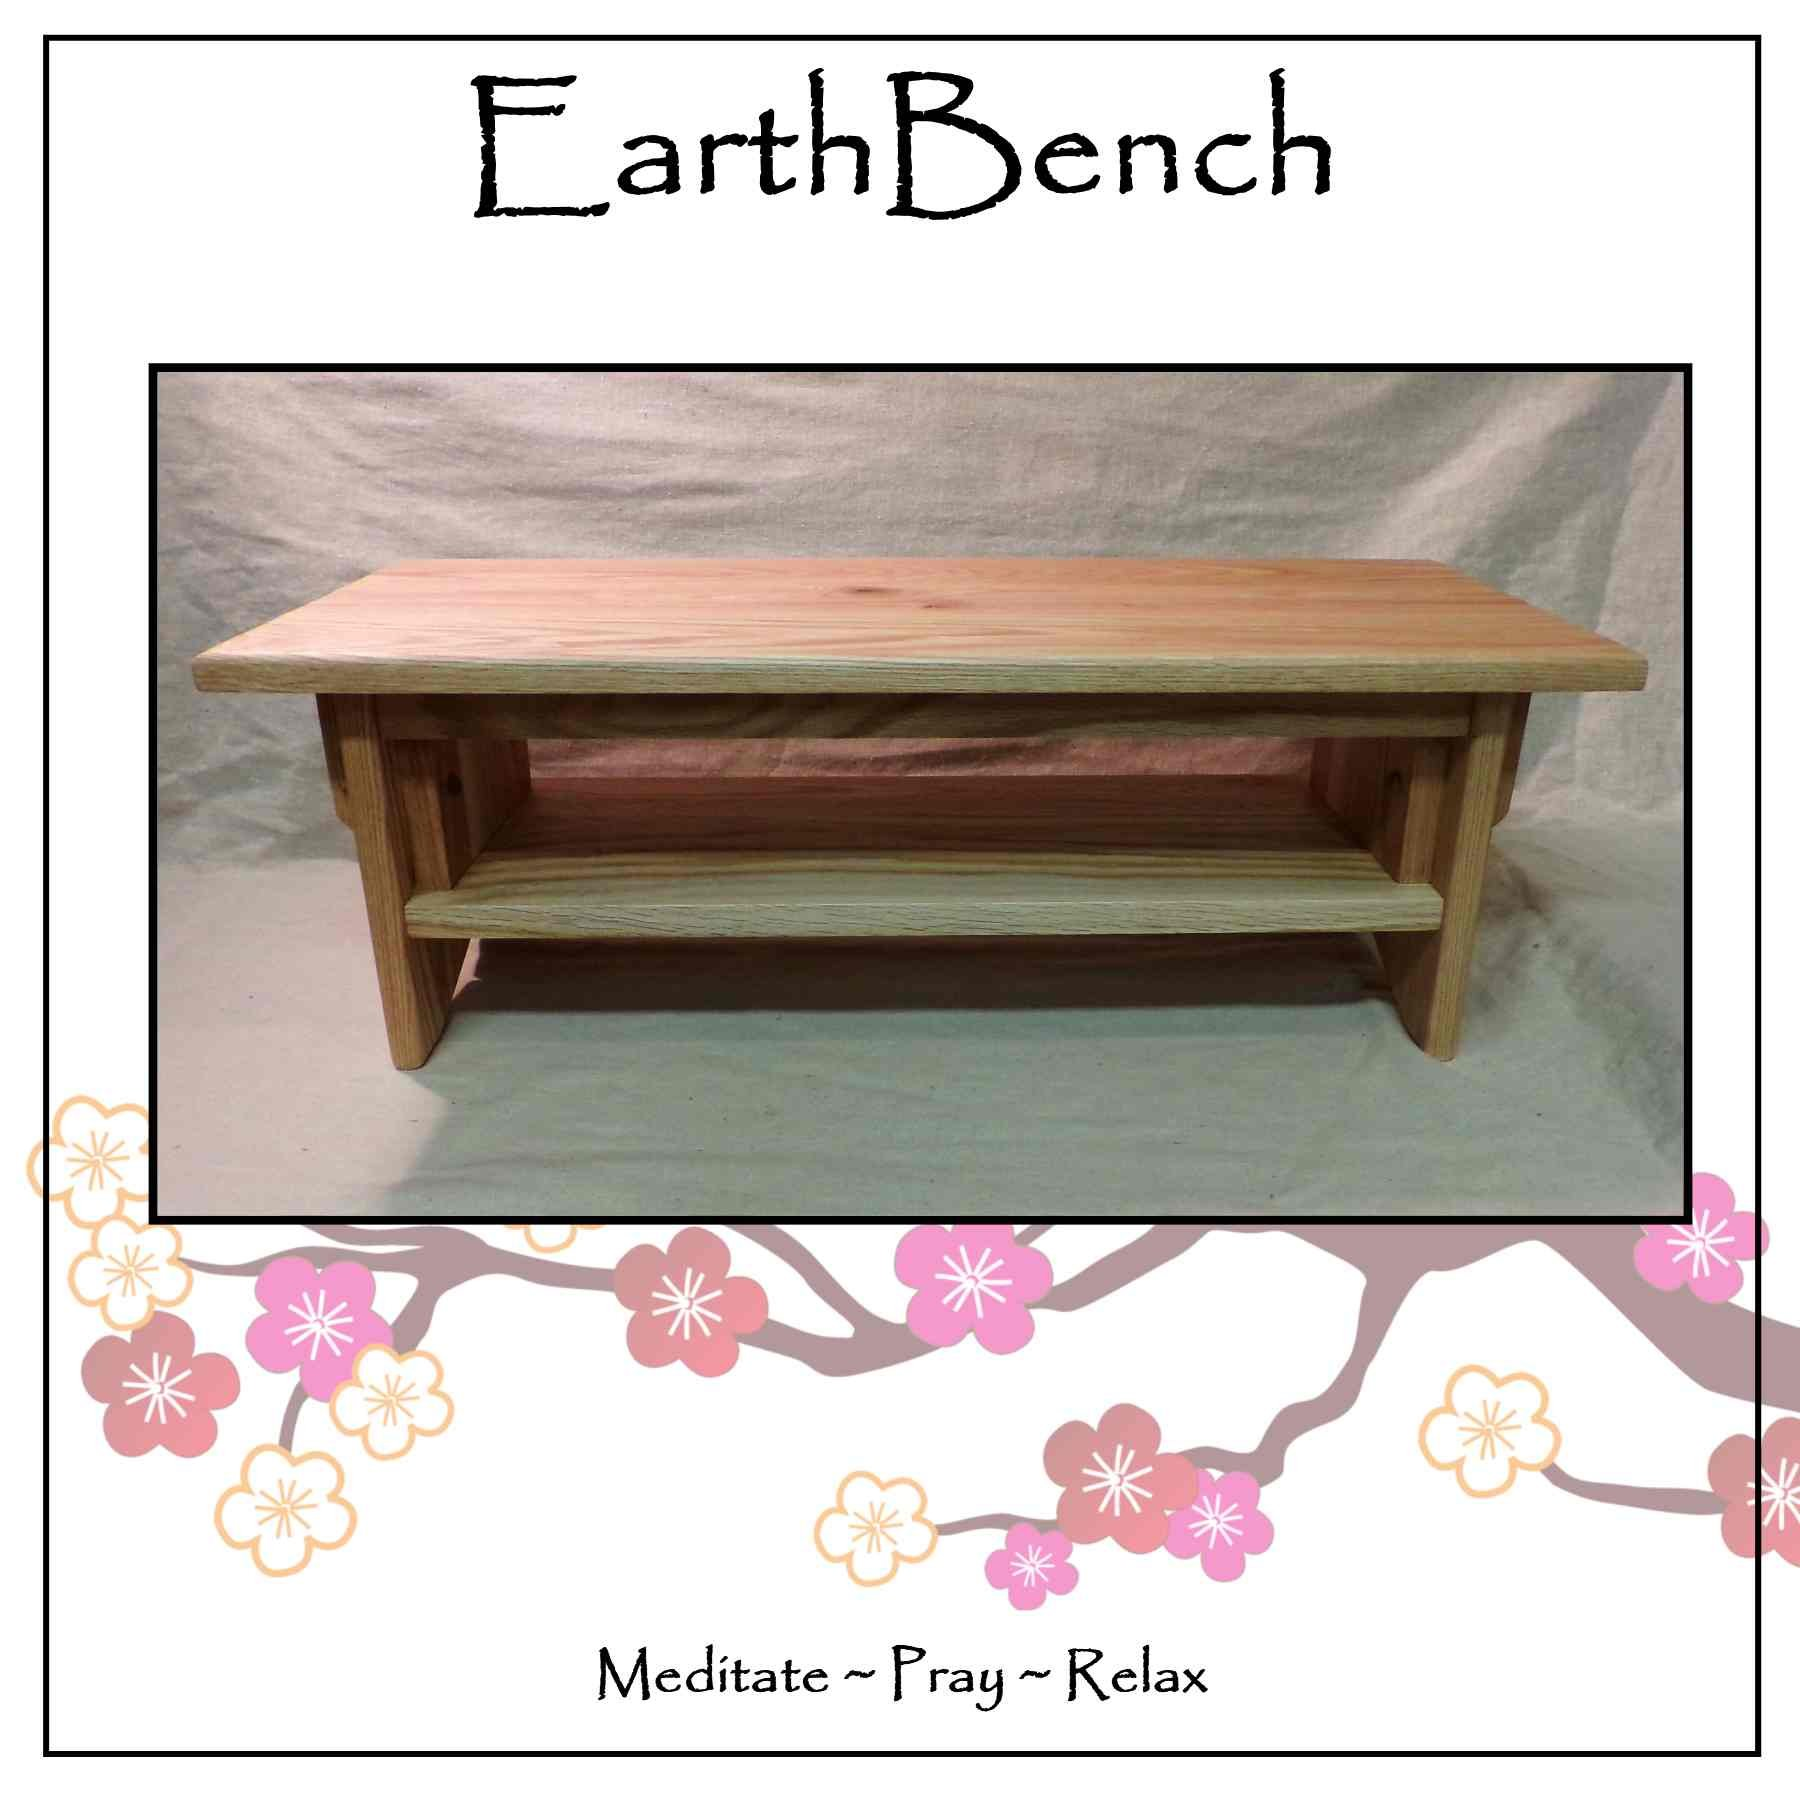 Meditation Bench ~ 10'' tall Personal Altar Table by EarthBench: RED OAK (28'' by 11'' by 10'' tall)